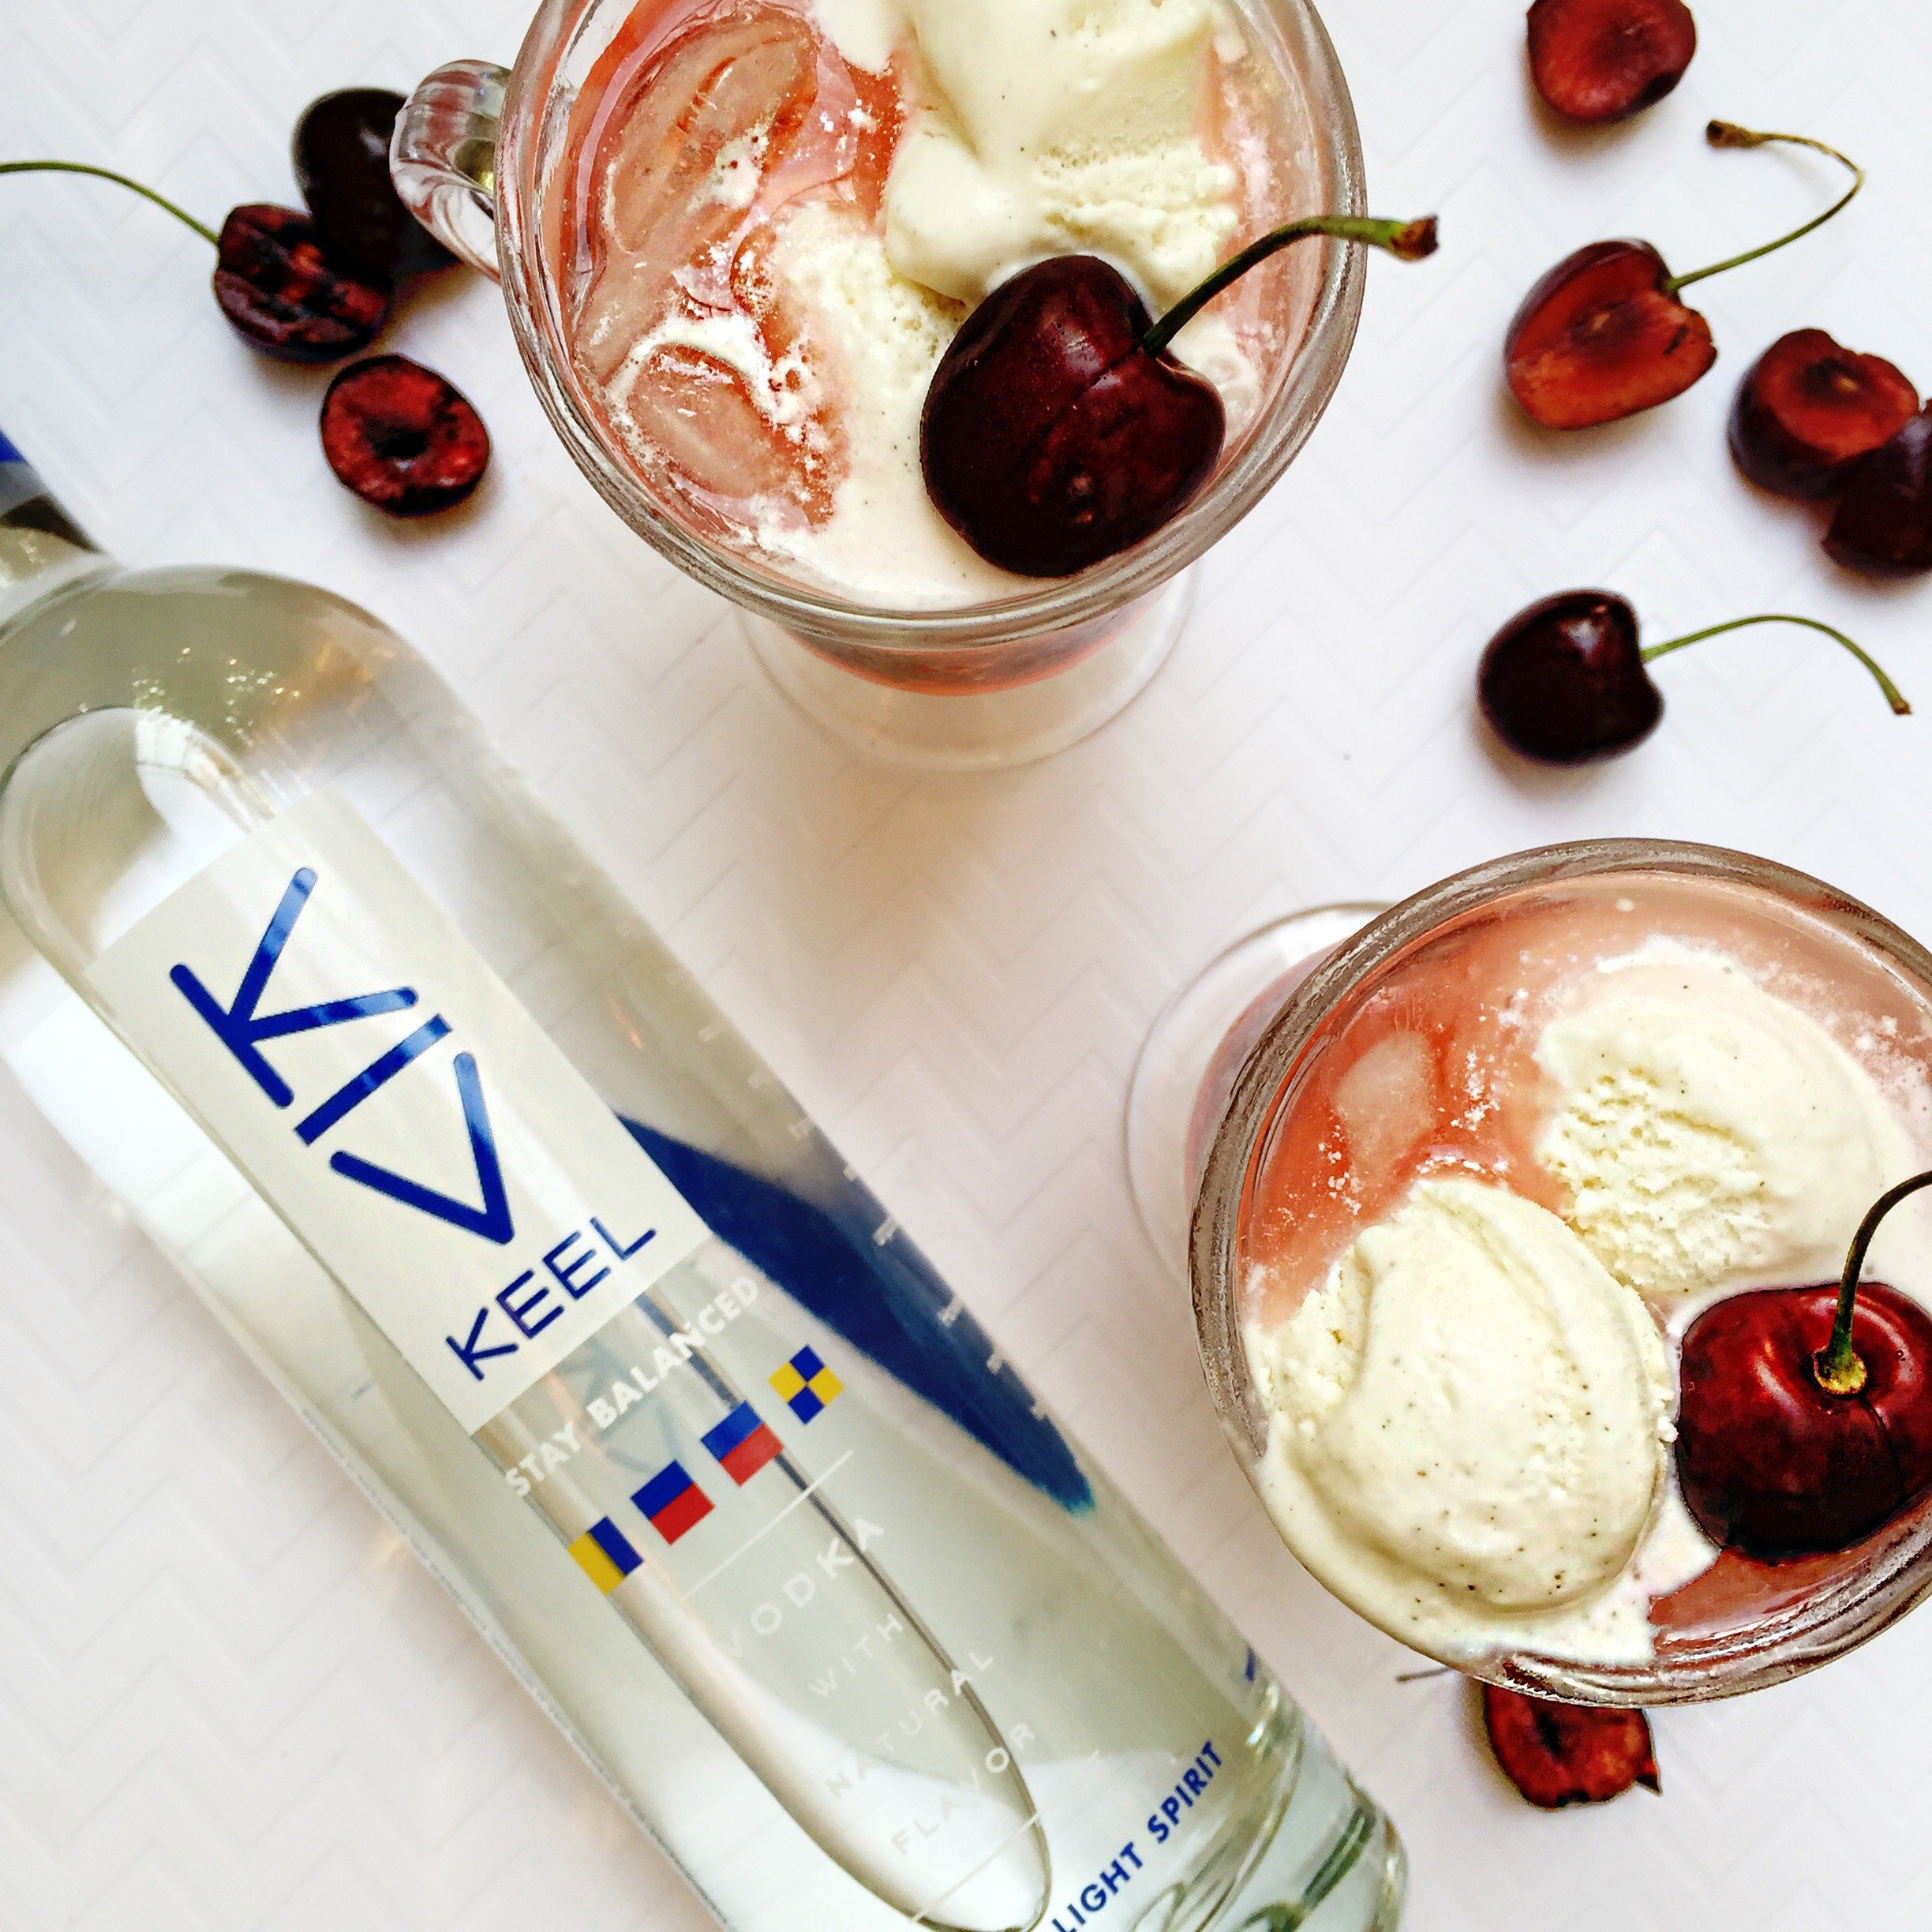 Cherry Floats with KEEL Vodka